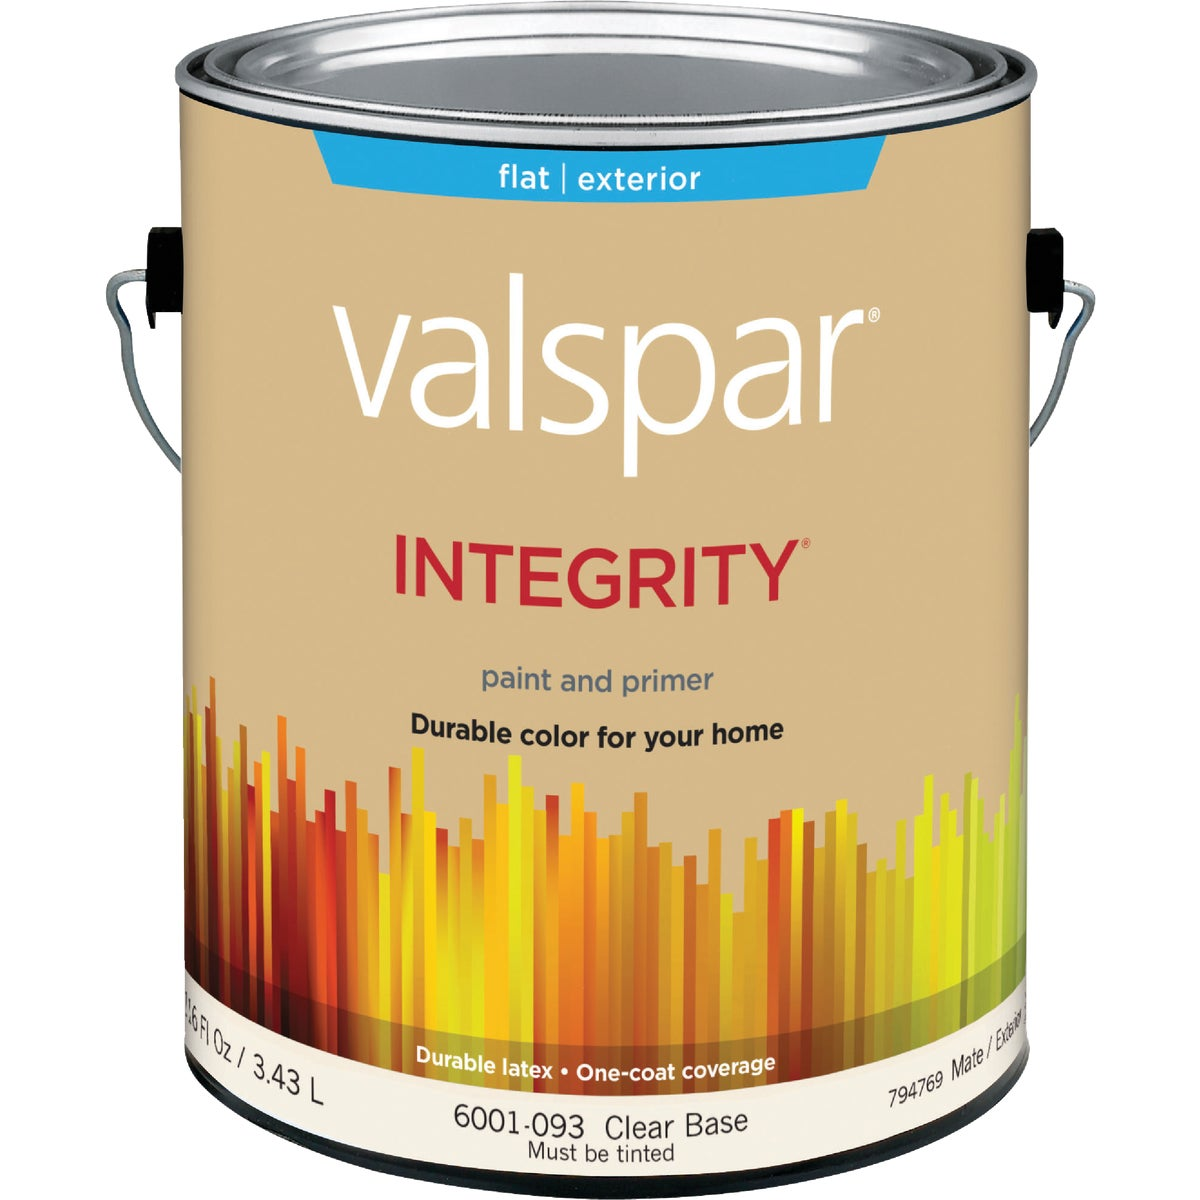 EXT FLAT CLEAR BS PAINT - 004.6001093.007 by Valspar Corp